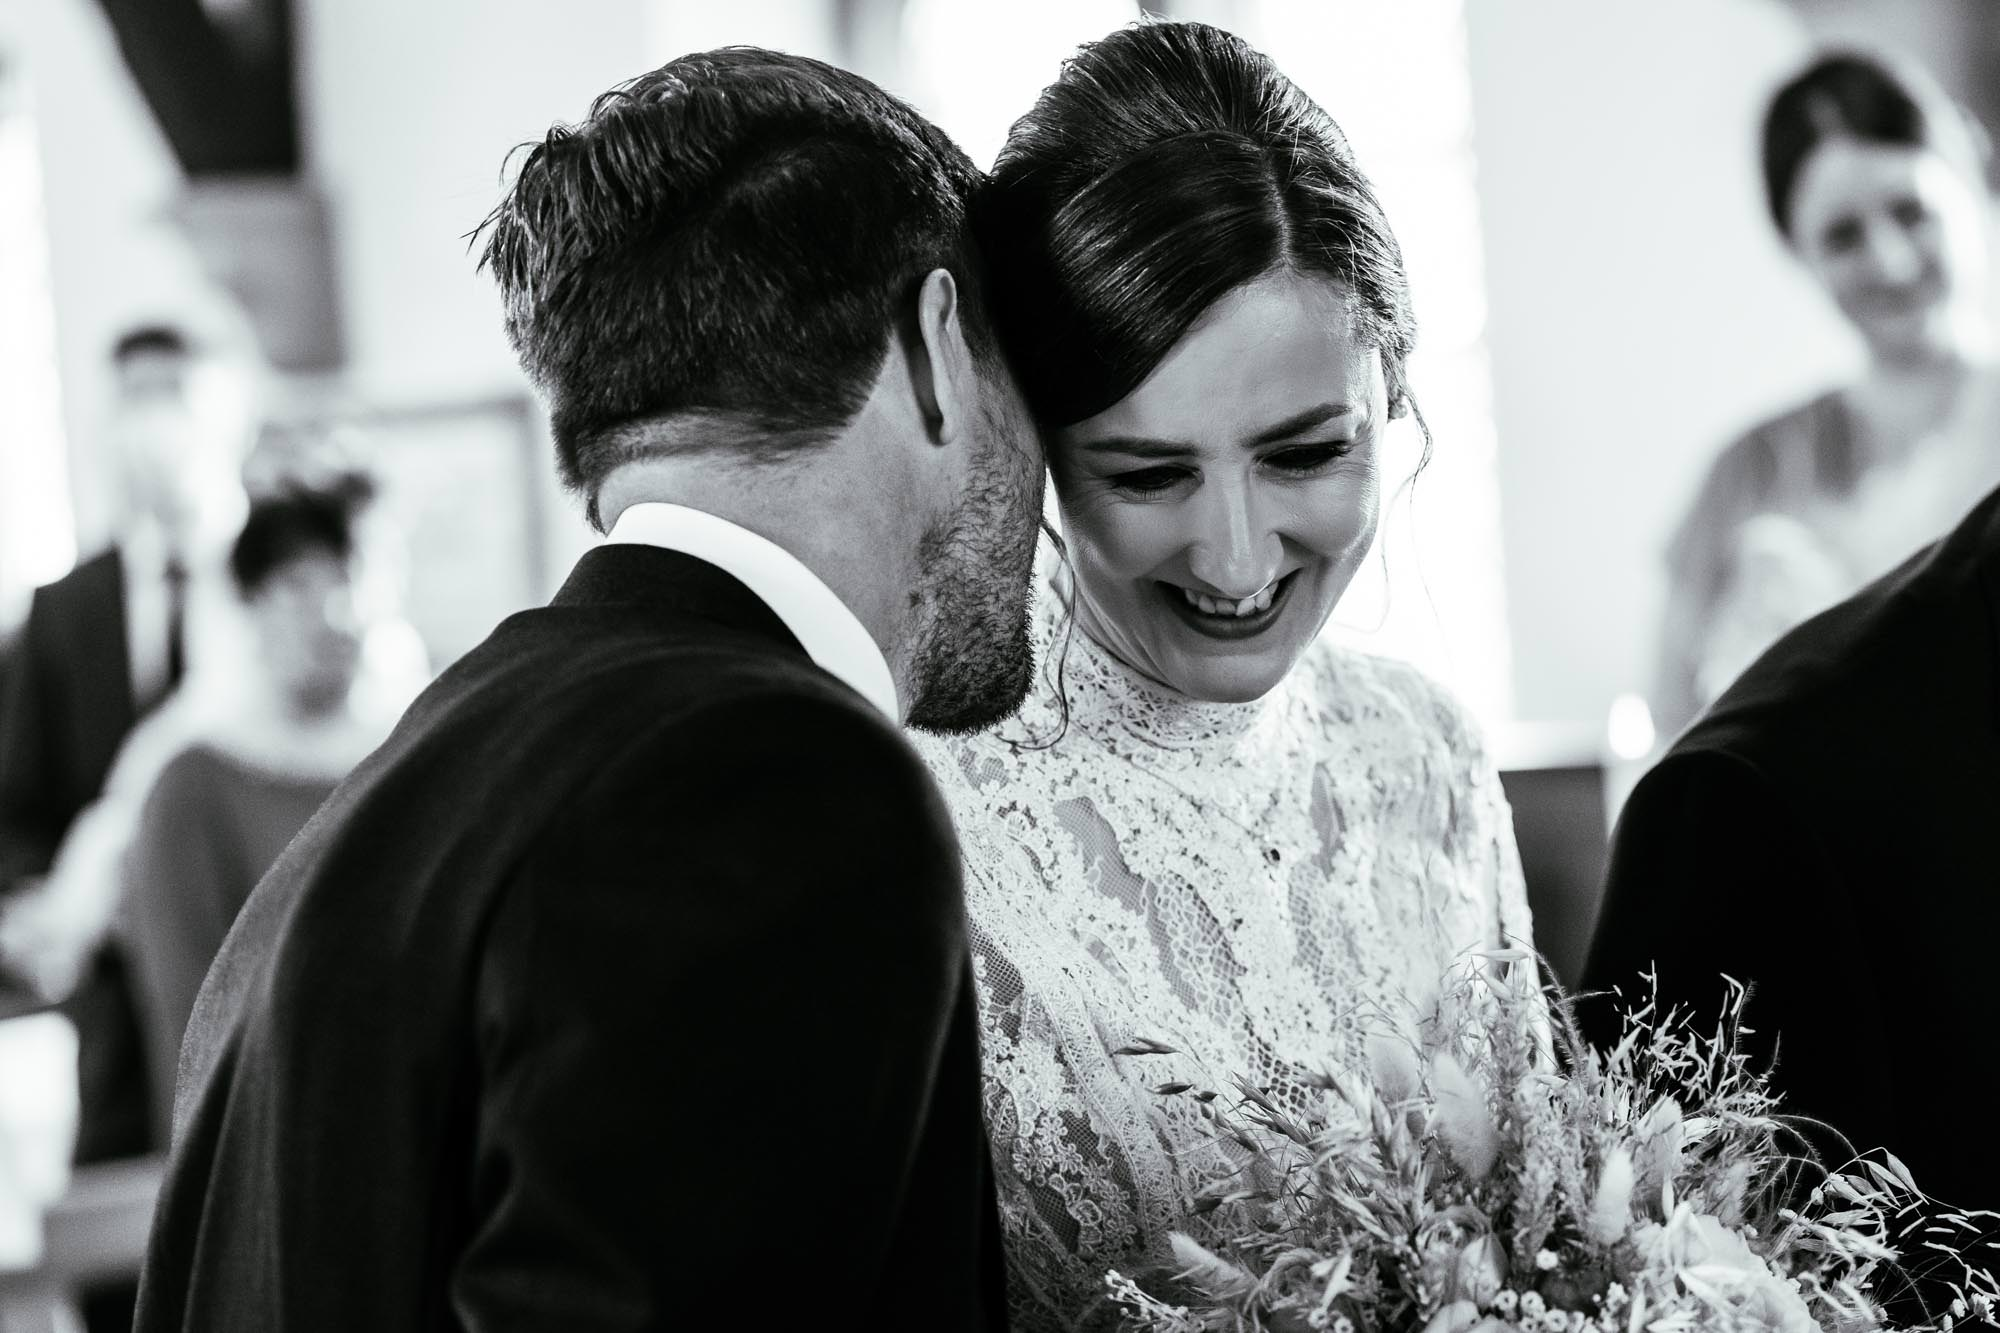 Grooms whispering to bride in church